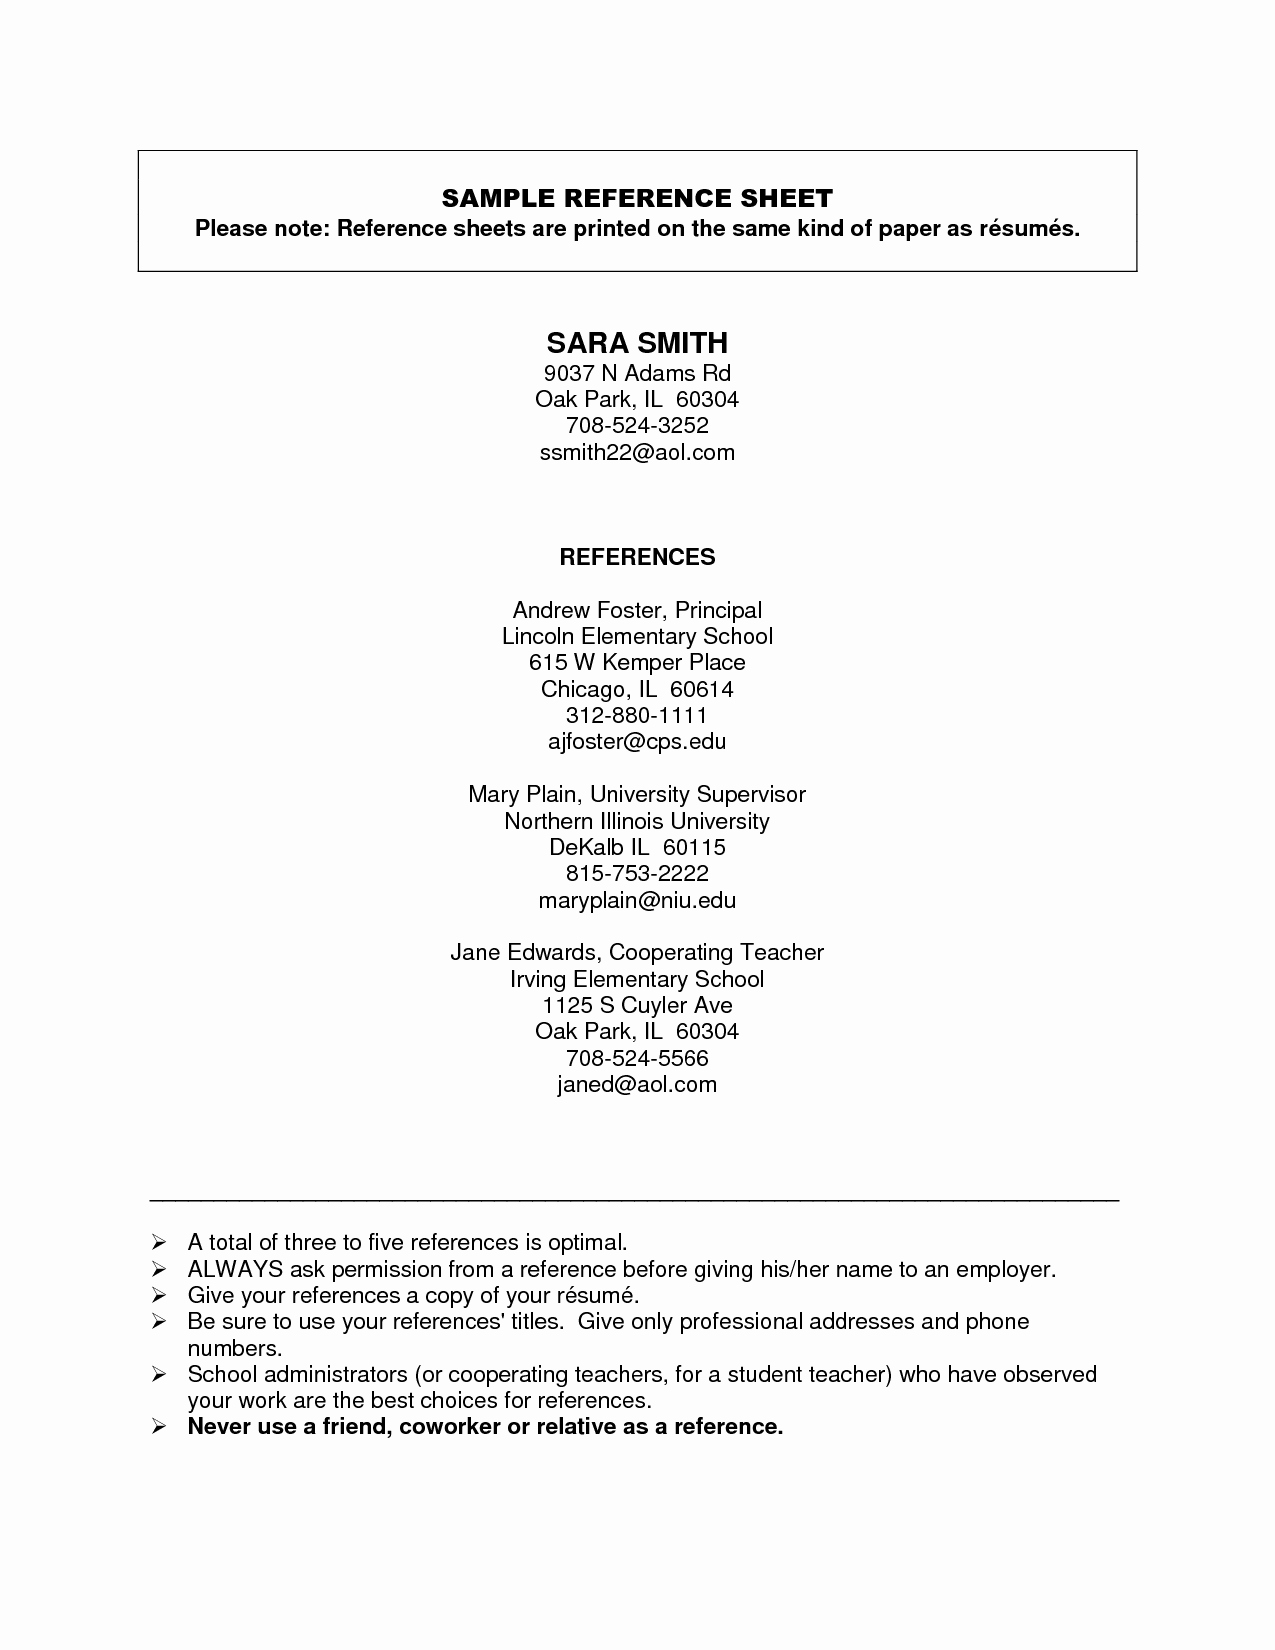 Sample Reference Sheet for Resume Best Of References Sample How to Create A Reference List Sheet for